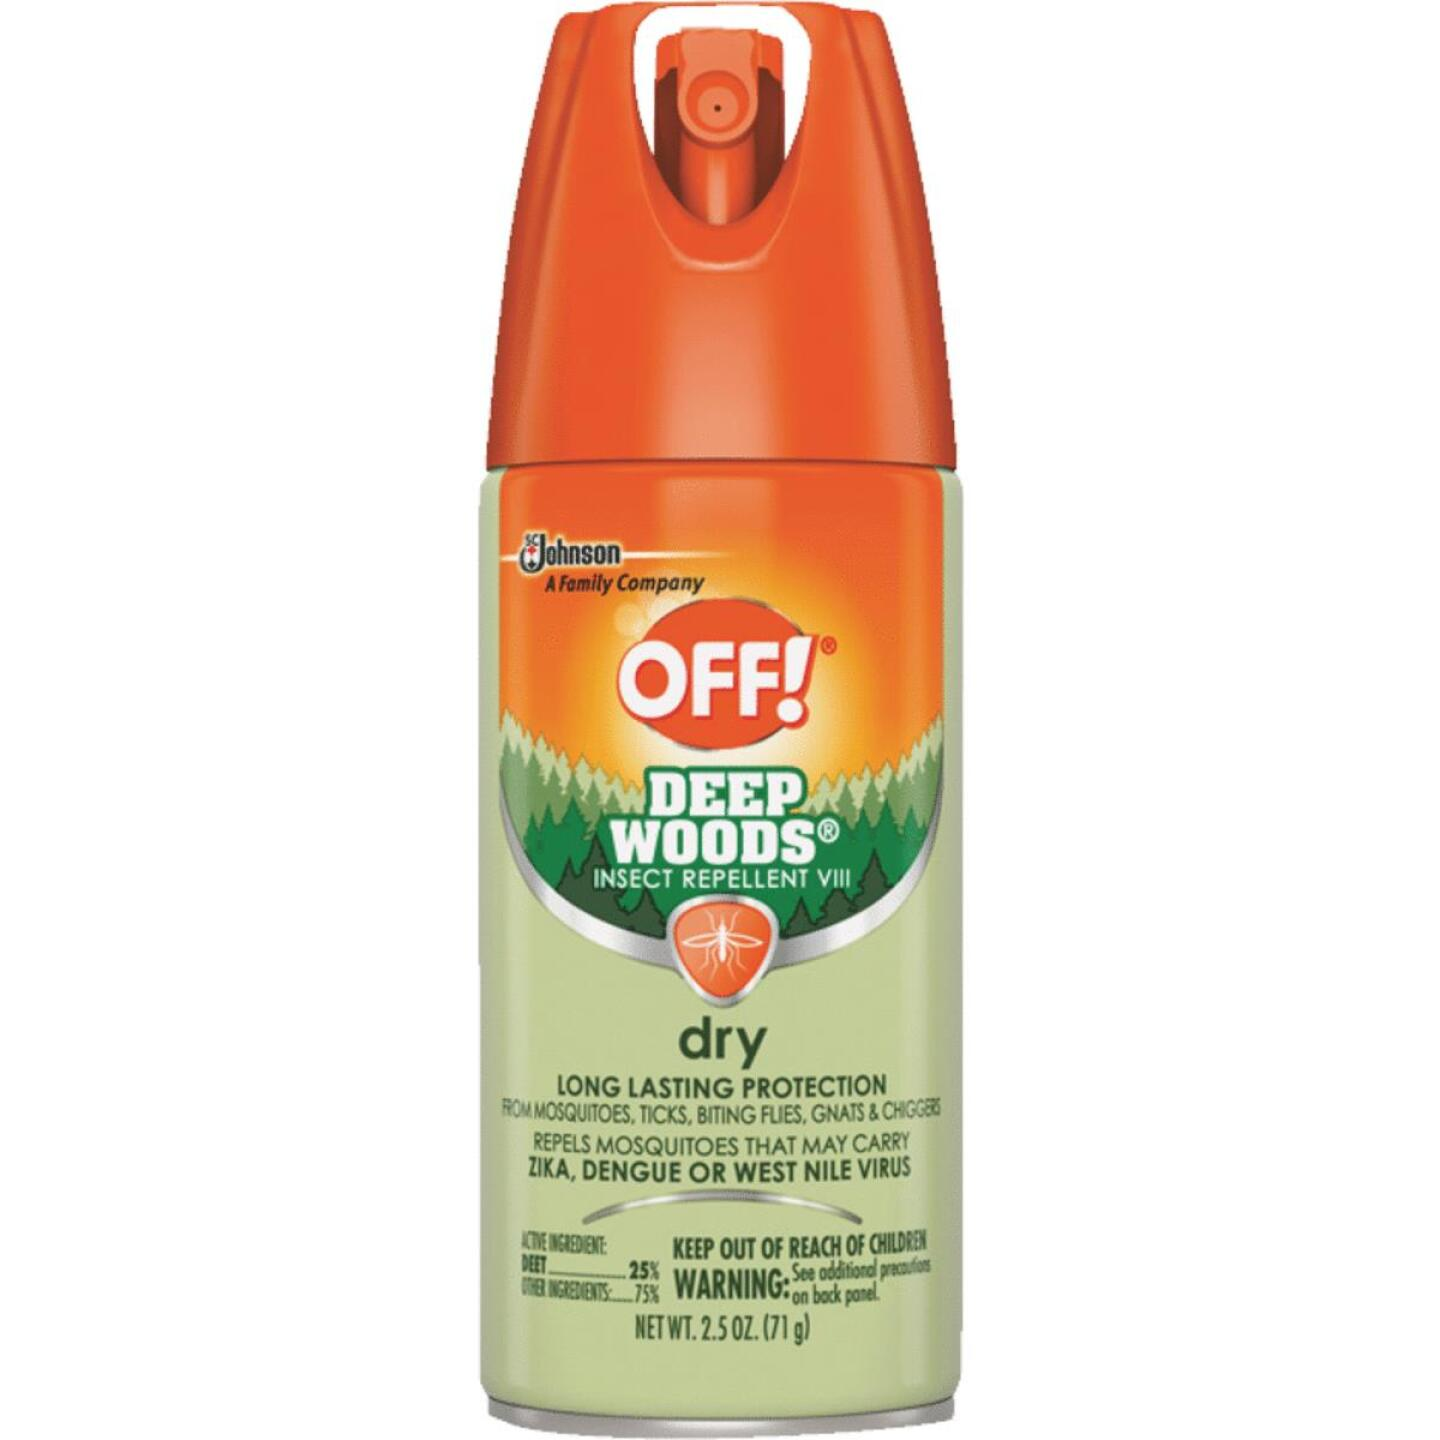 Deep Woods Off 2.5 Oz. Dry Insect Repellent Aerosol Spray Image 1